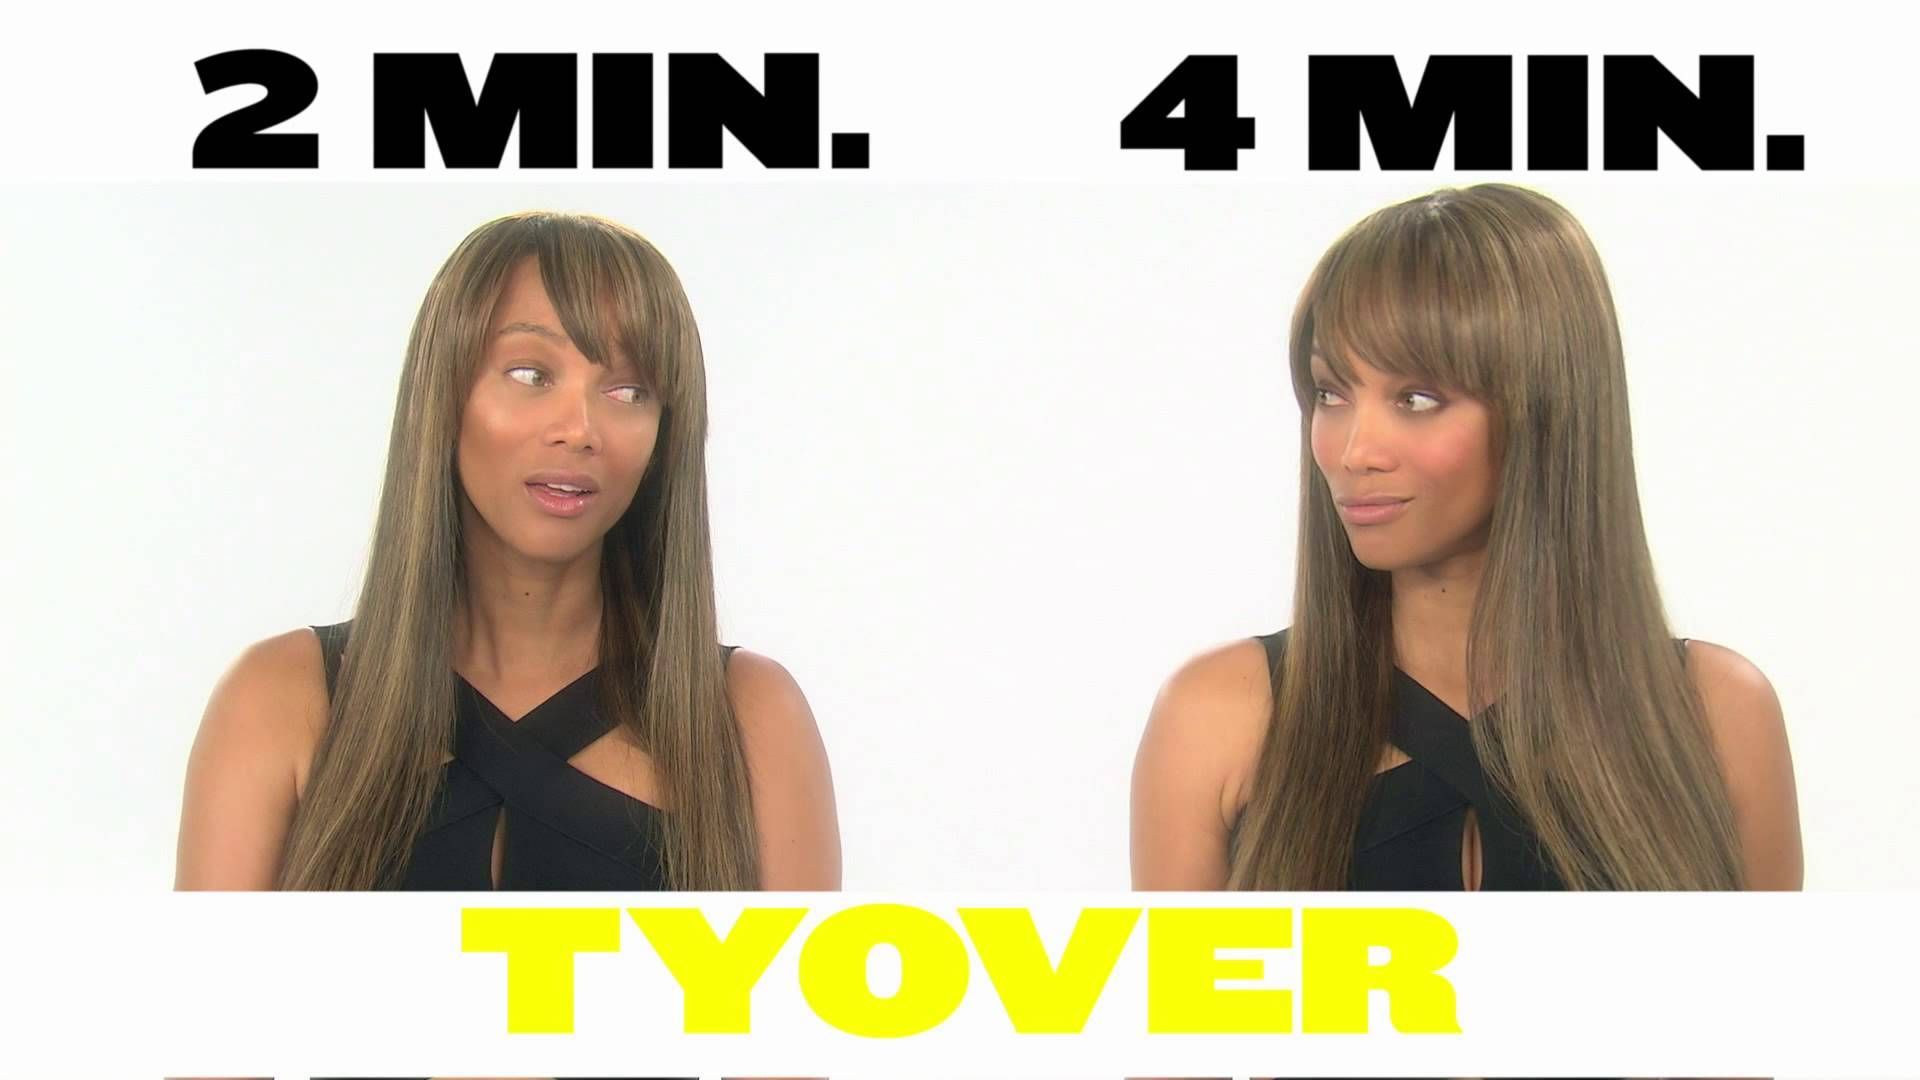 If you are intimidated by makeup, Tyra's Beauty is the